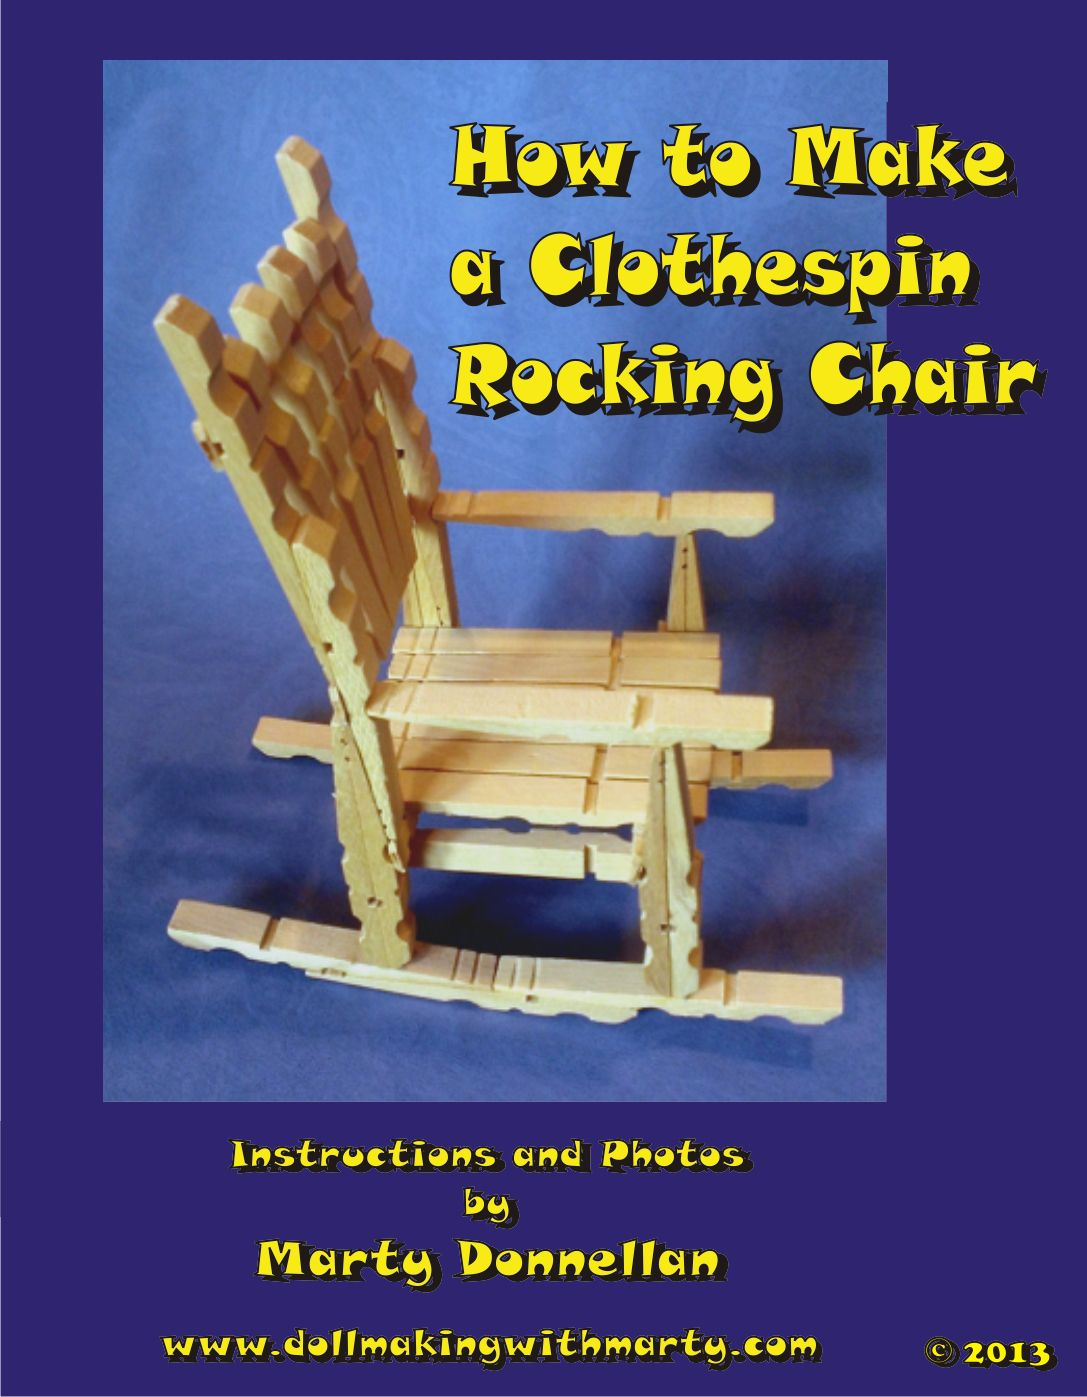 Miraculous How To Make A Clothespin Rocking Chair Rocking Chair Squirreltailoven Fun Painted Chair Ideas Images Squirreltailovenorg